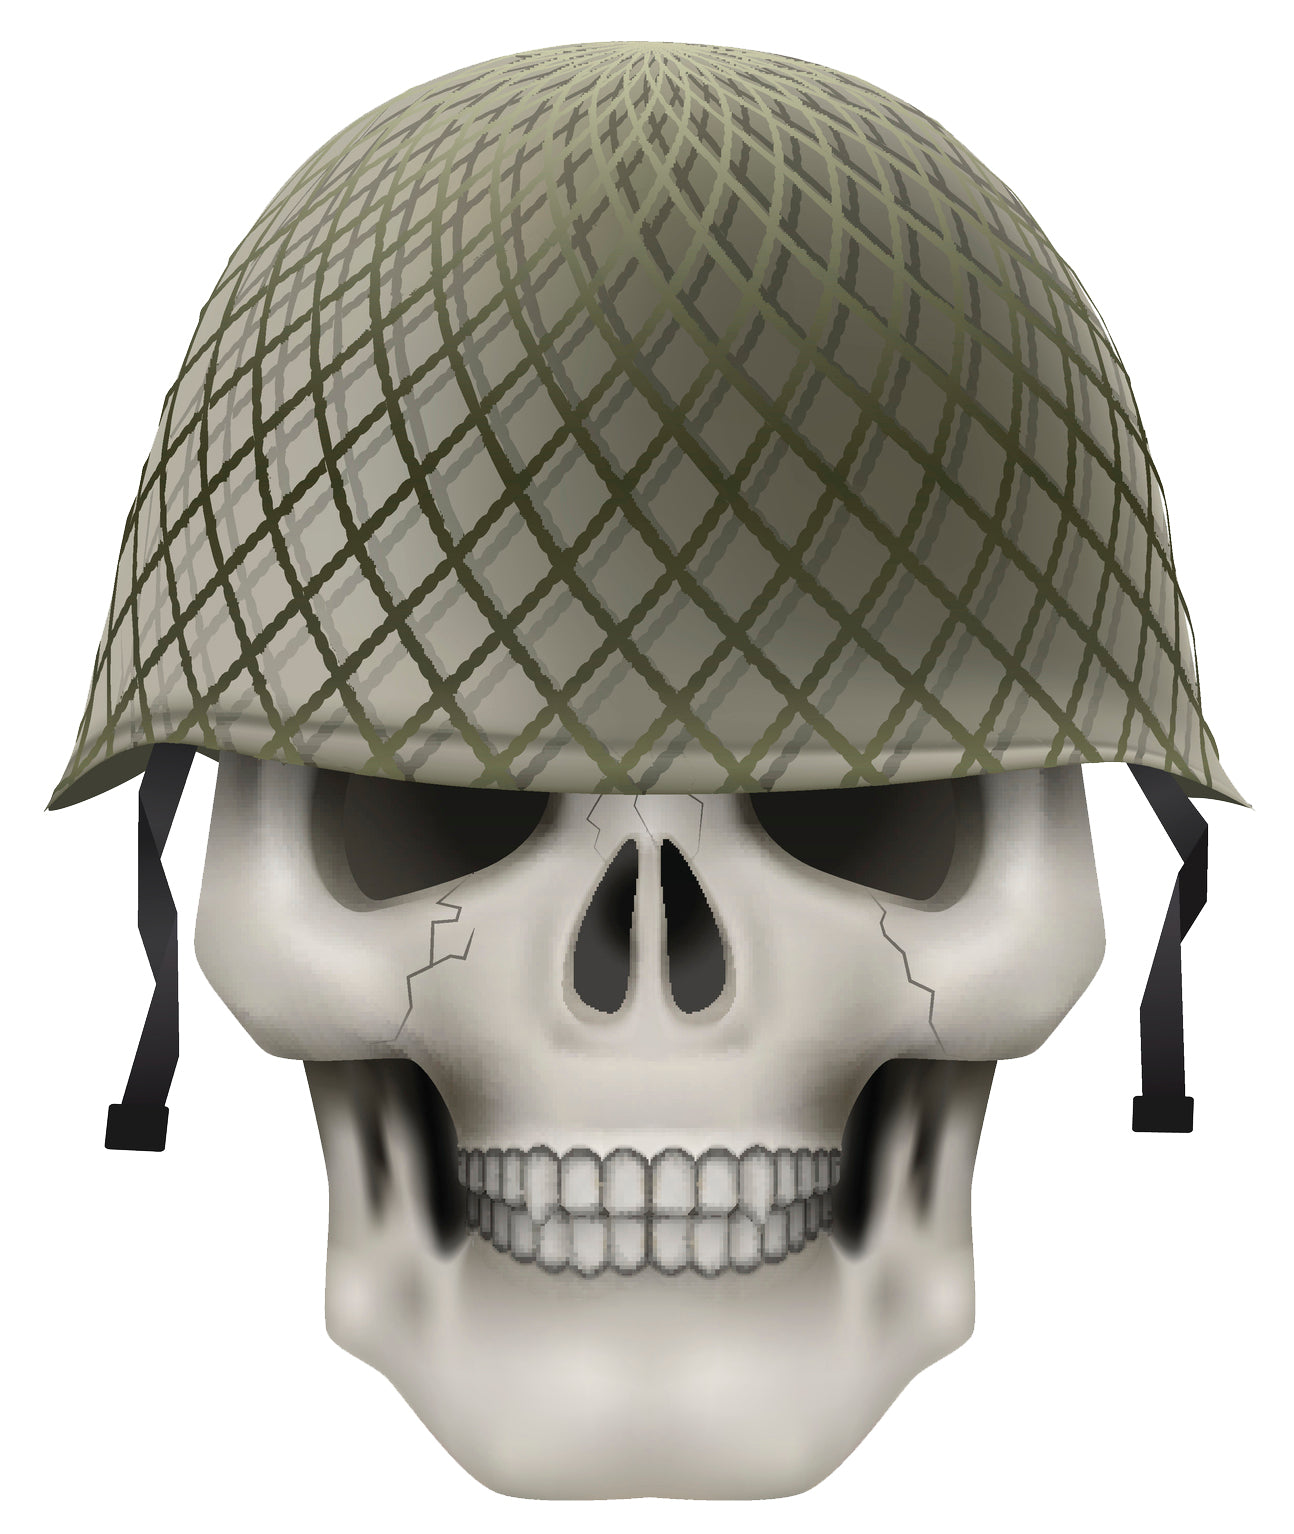 Skeleton Skull Head Icon - Military Green Soldier Helmet Vinyl Decal Sticker